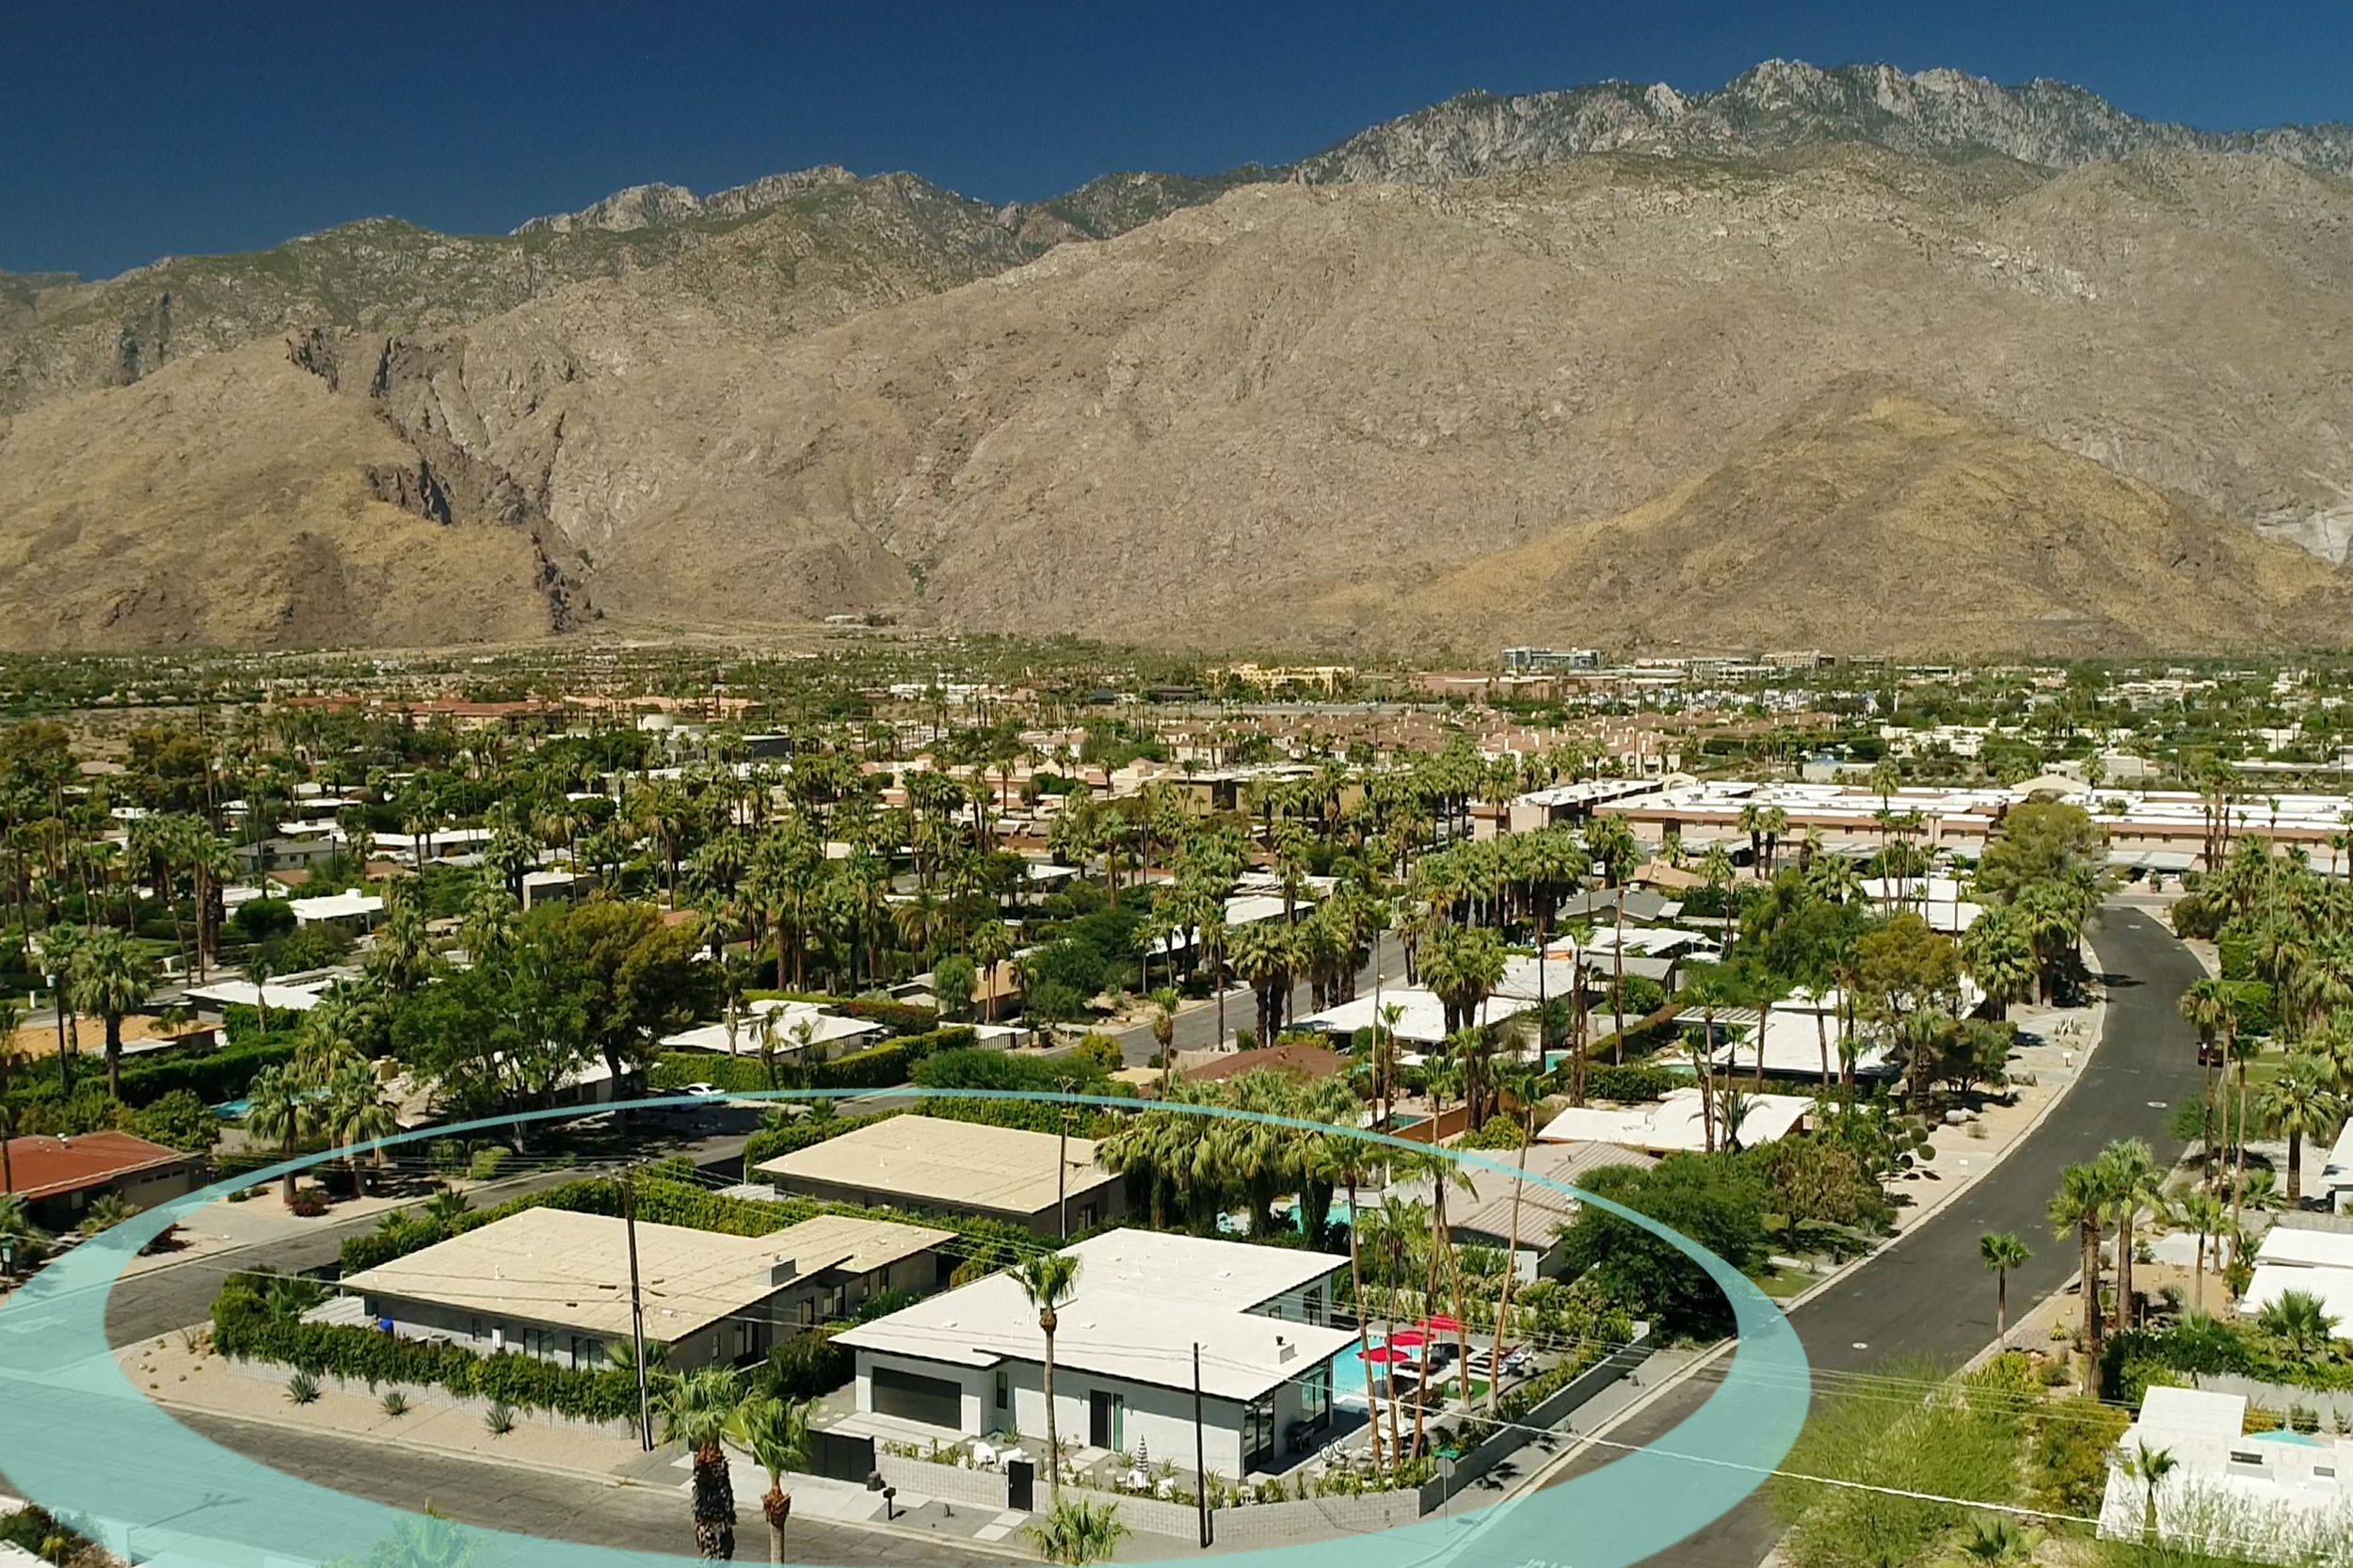 Palms at Park features 3 side-by-side Palm Springs luxury rentals with 5, 5 and 6 bedrooms respectively.